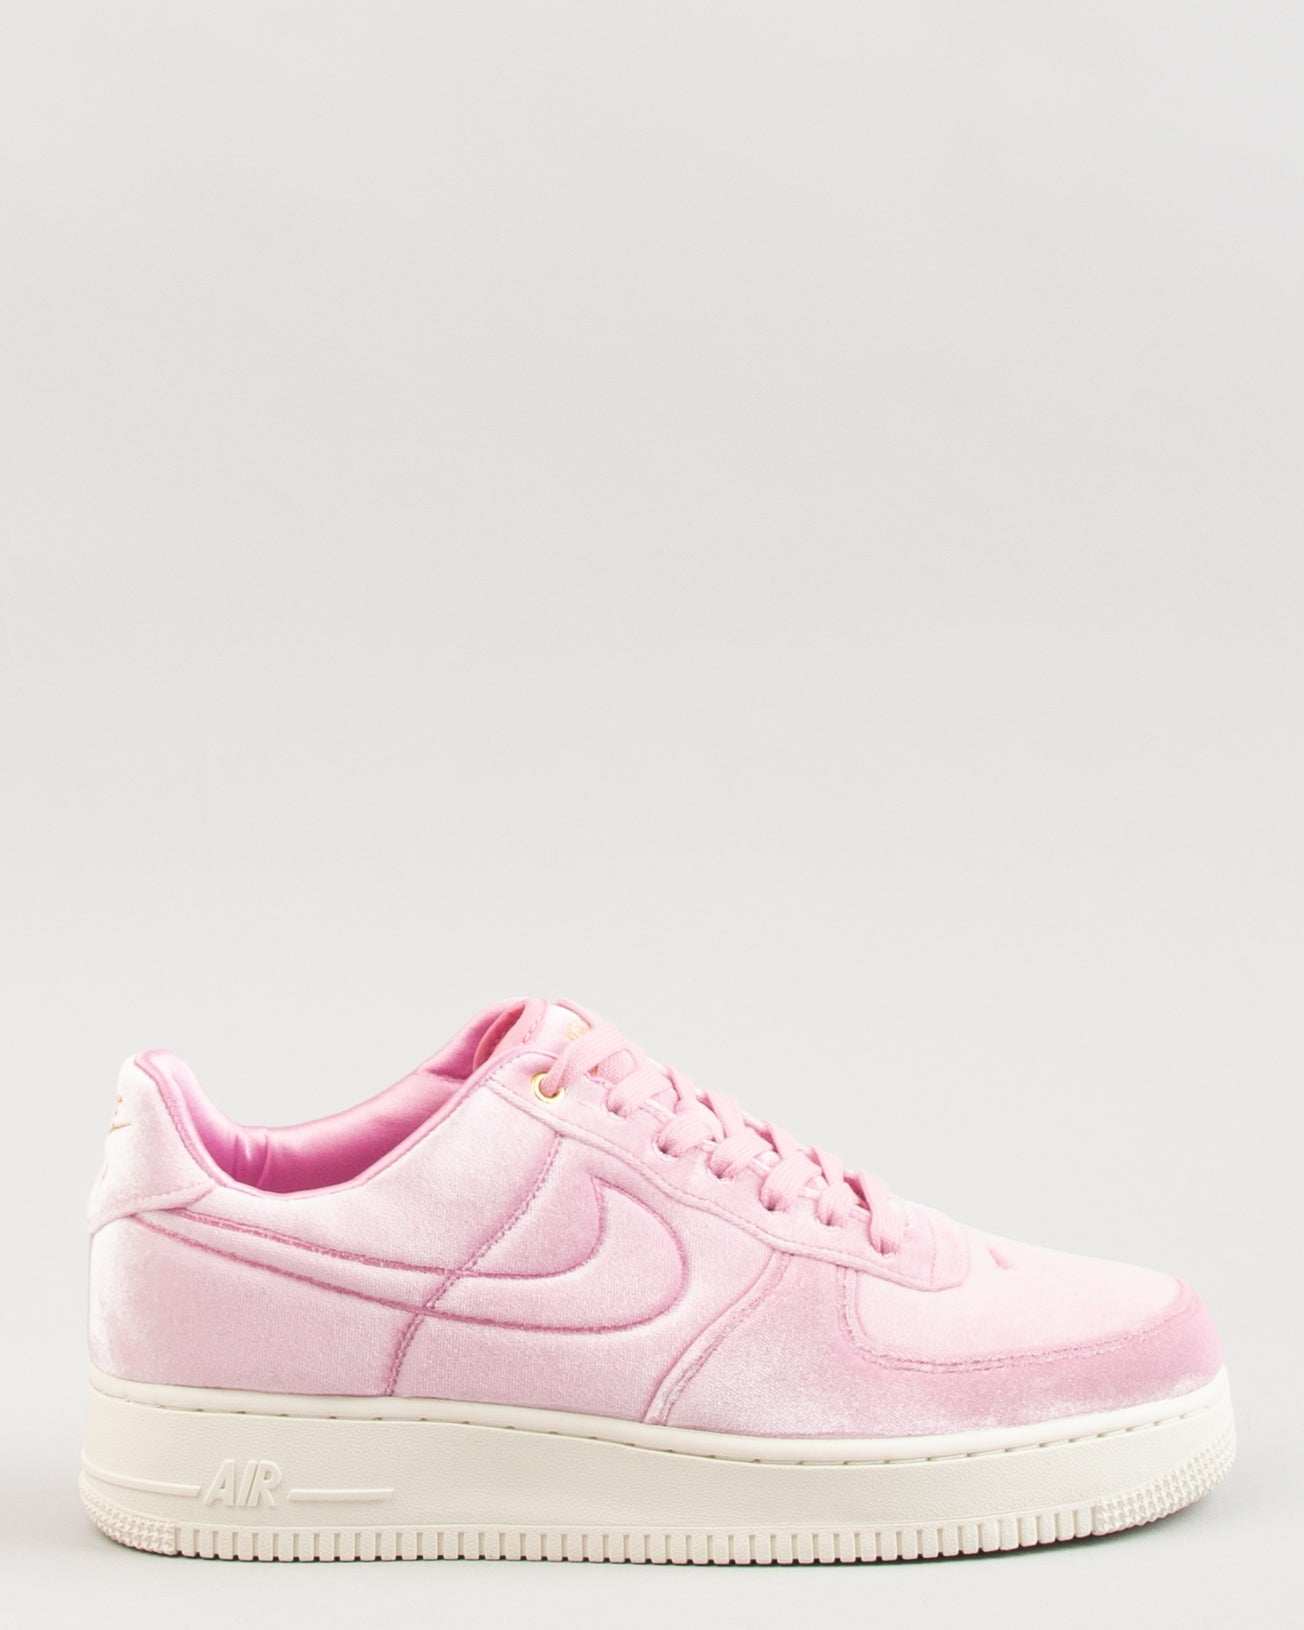 Air Force 1 '07 PRM 3 Rise Pink/Rise Pink